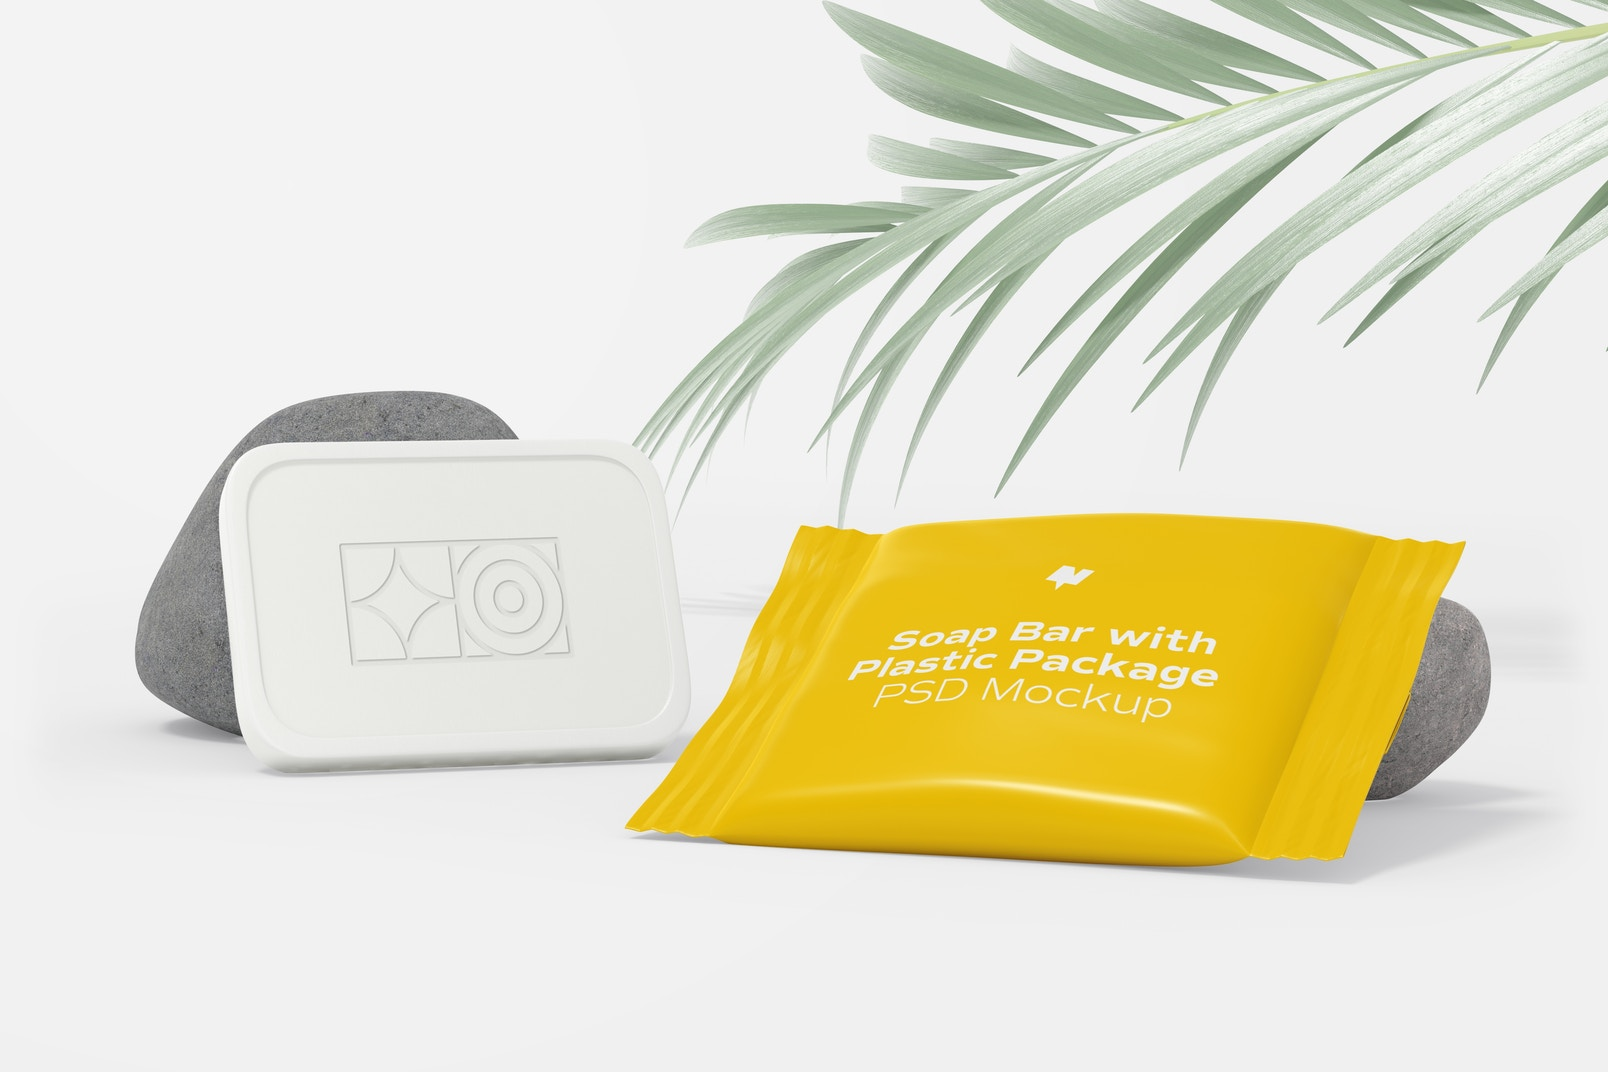 Soap Bar with Plastic Package Mockup, Perspective View